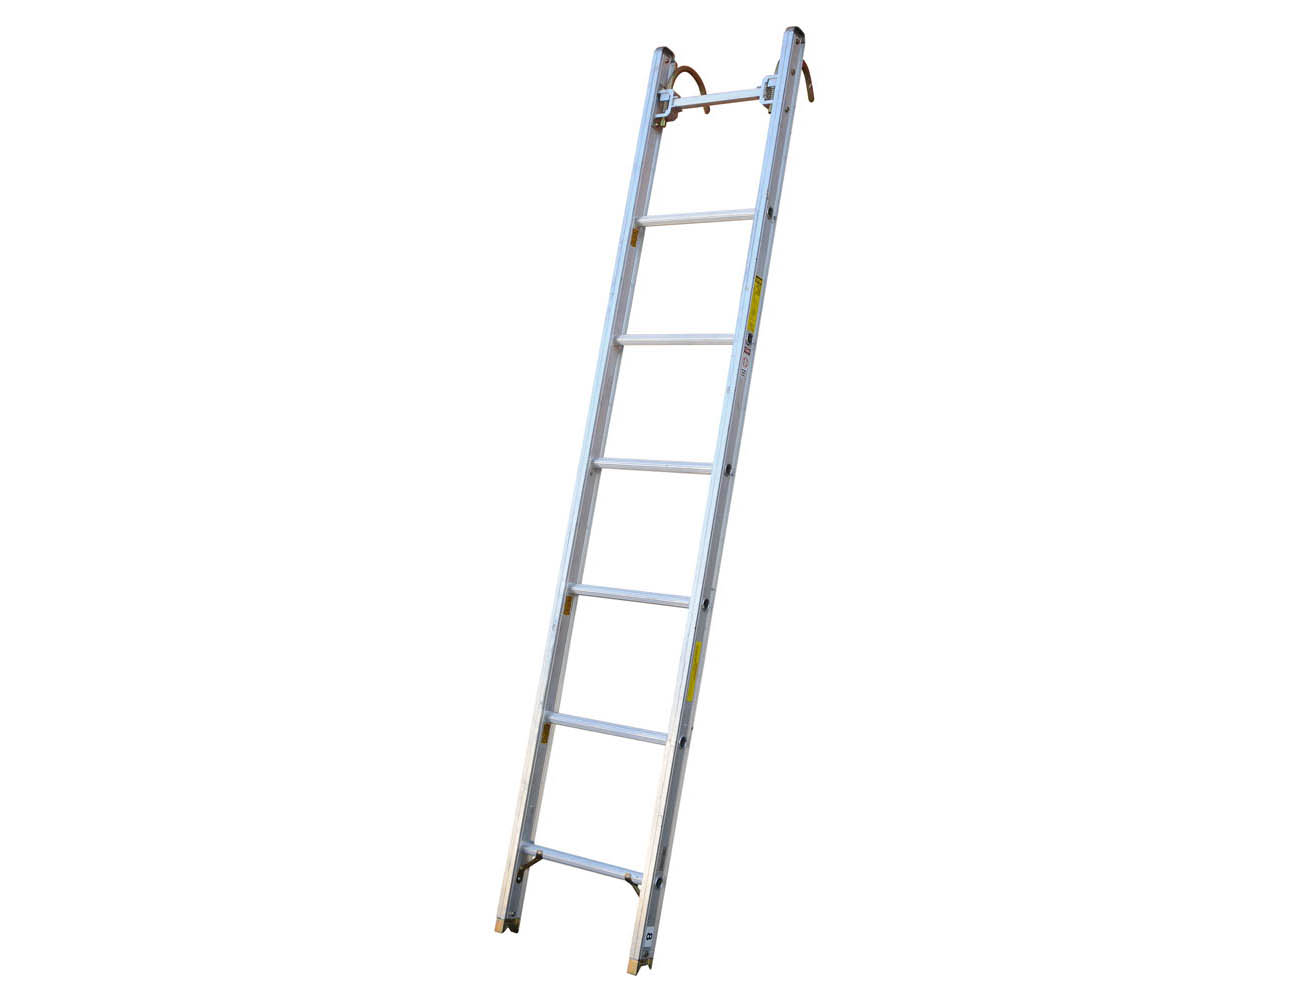 Fire Ground Ladders